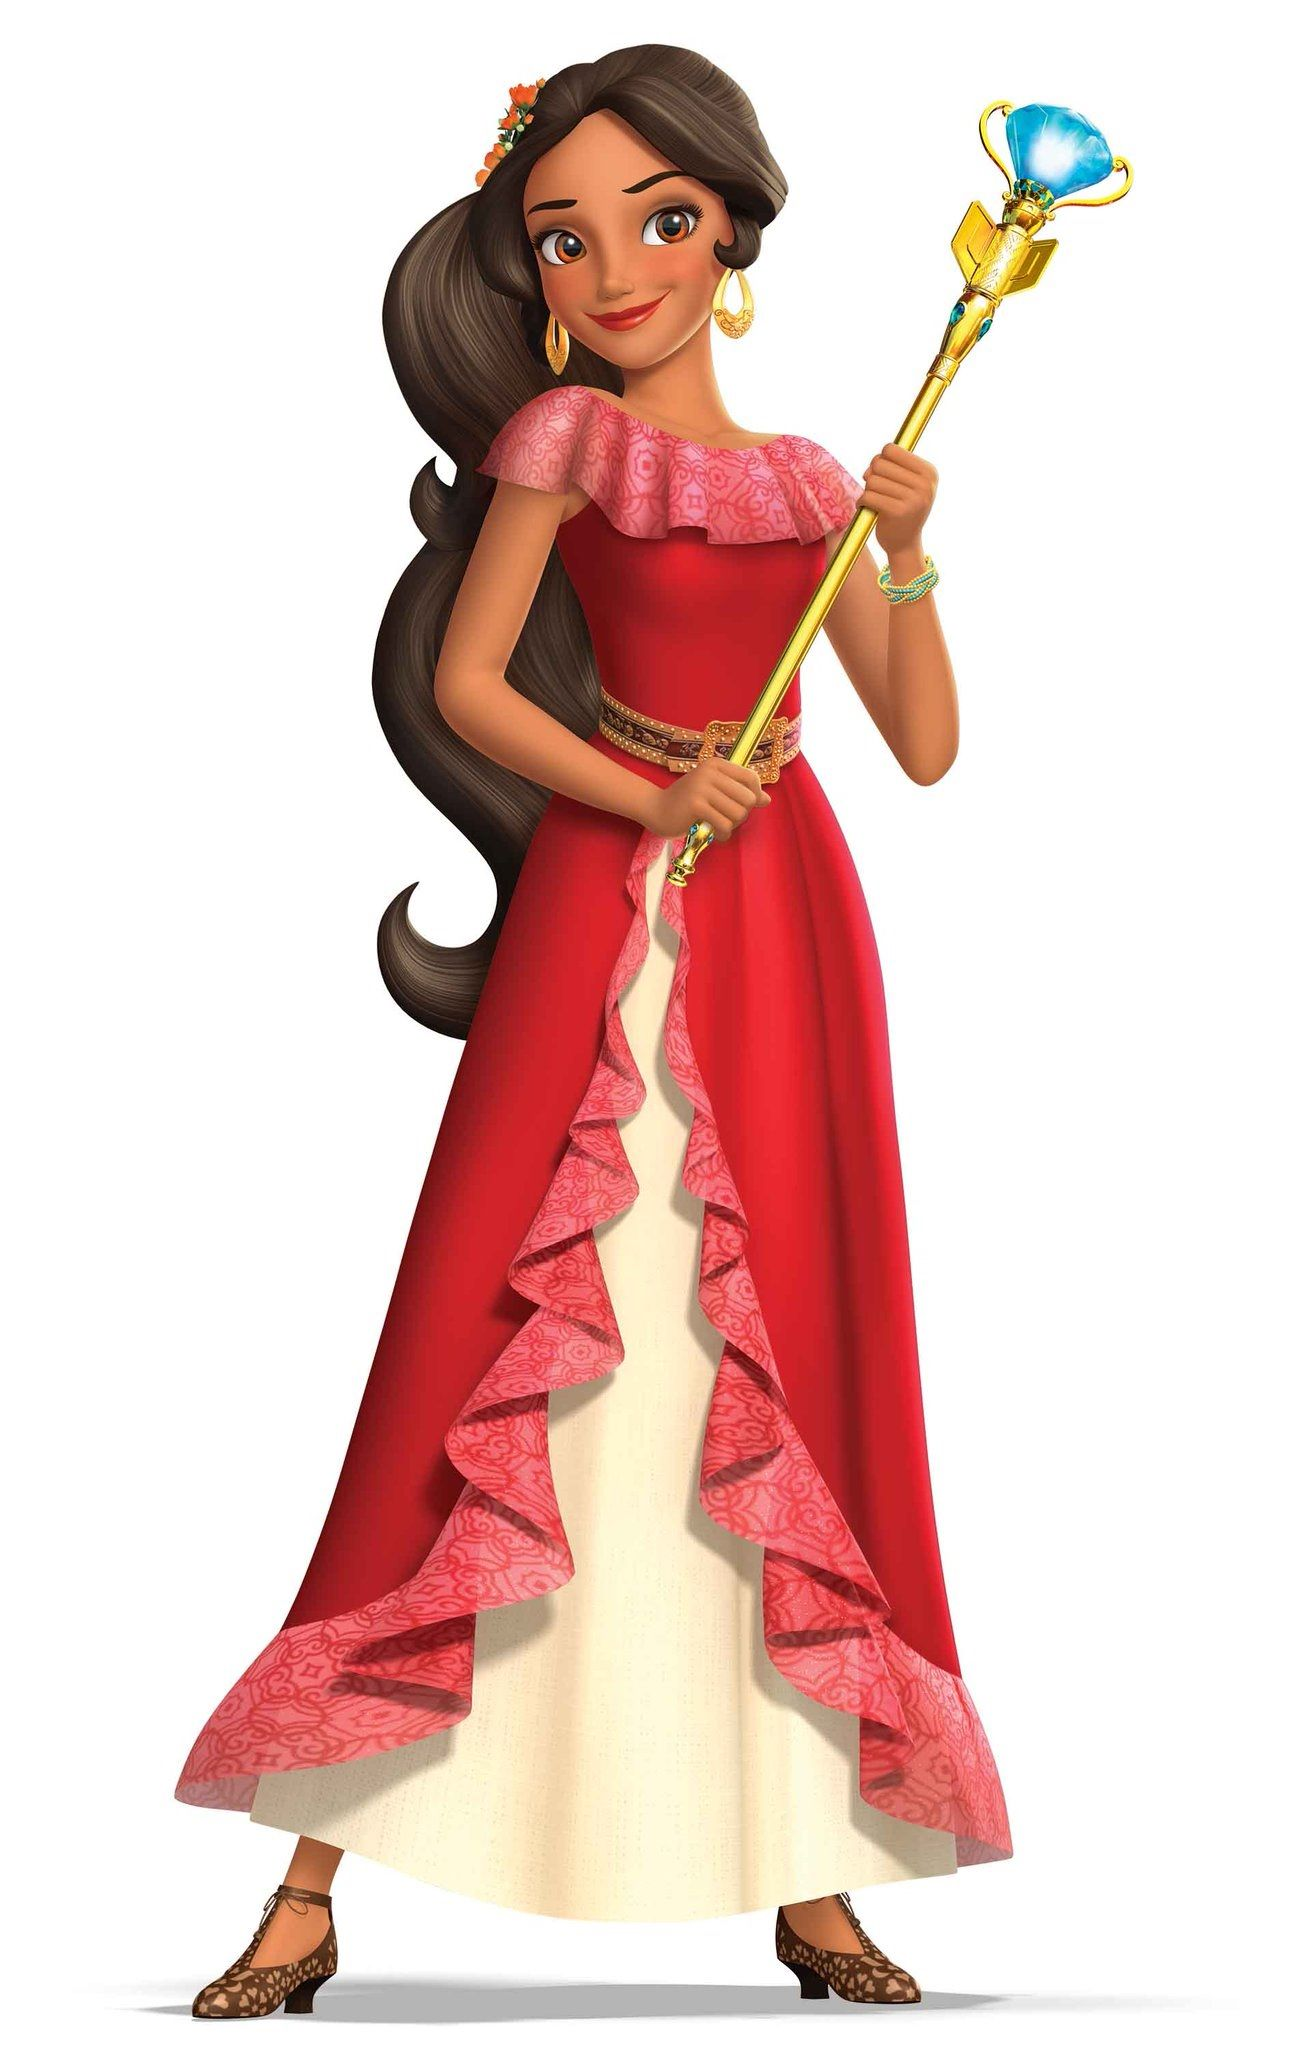 Princess Elena Of Avalor Is The Protagonist Of The Disney Channel Animated Series Elena Of Avalor She Is The Disney Princess Elena Disney Elena Princess Elena